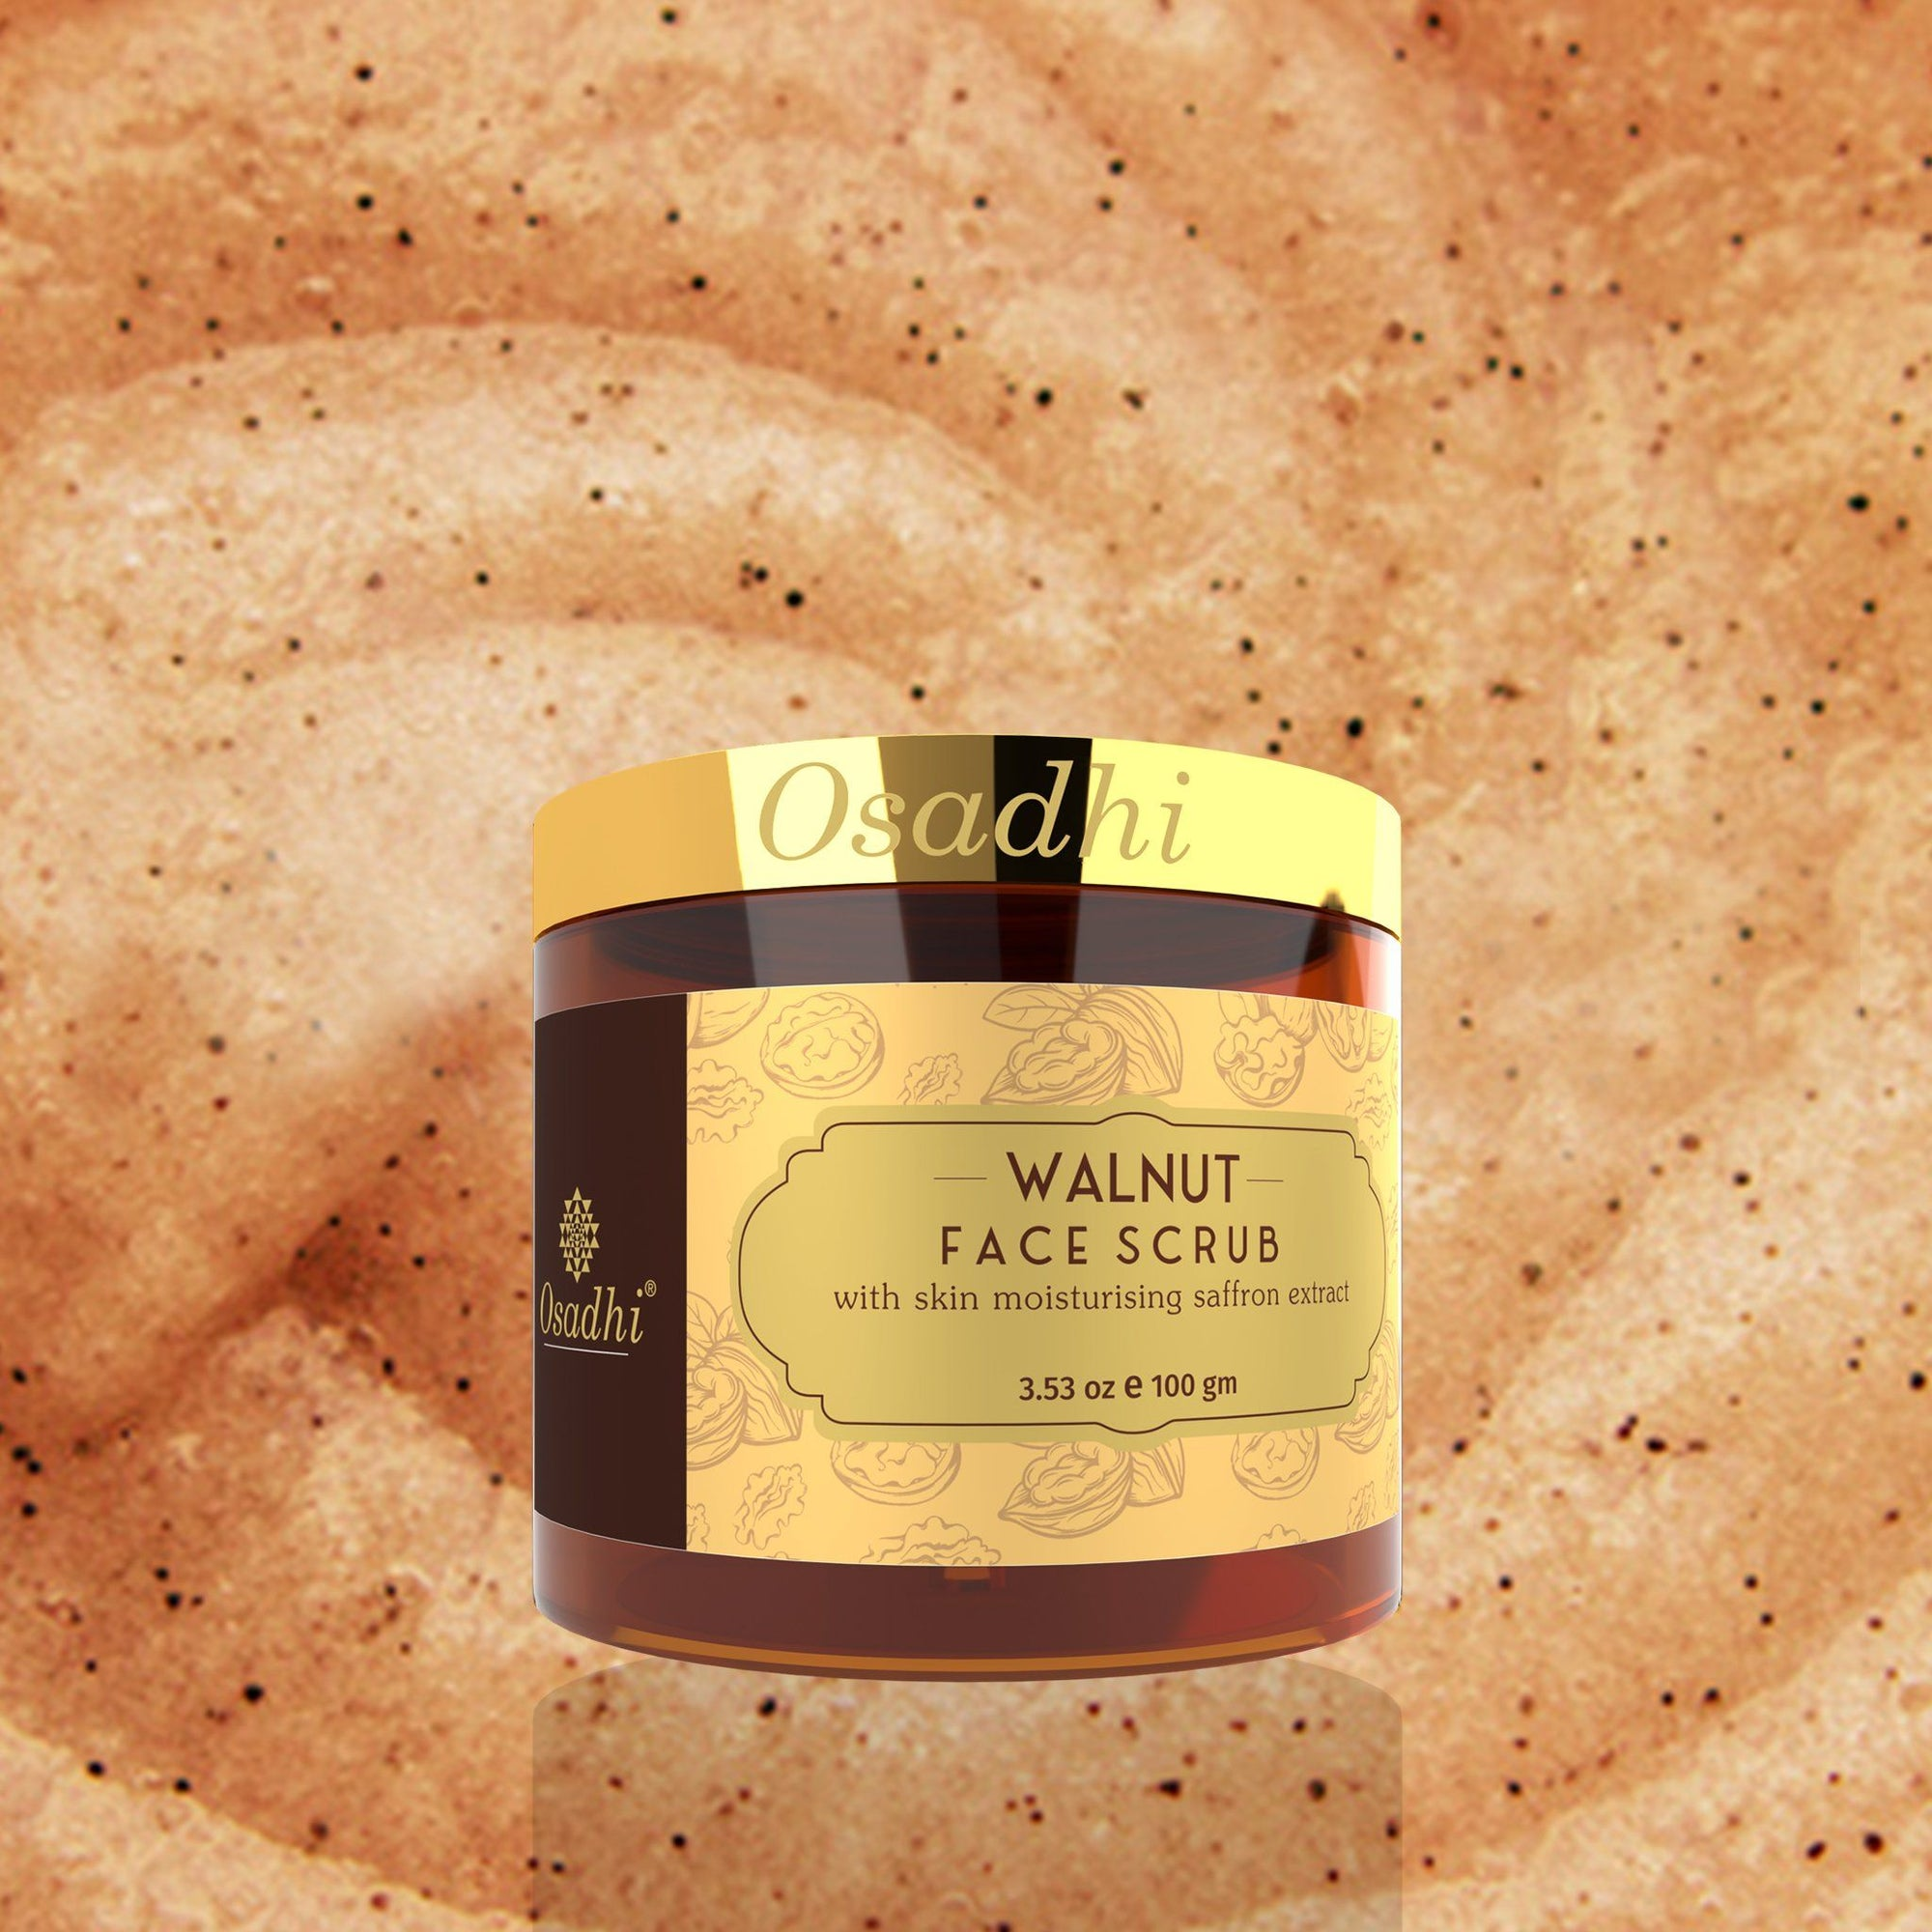 Walnut Face Scrub Osadhi